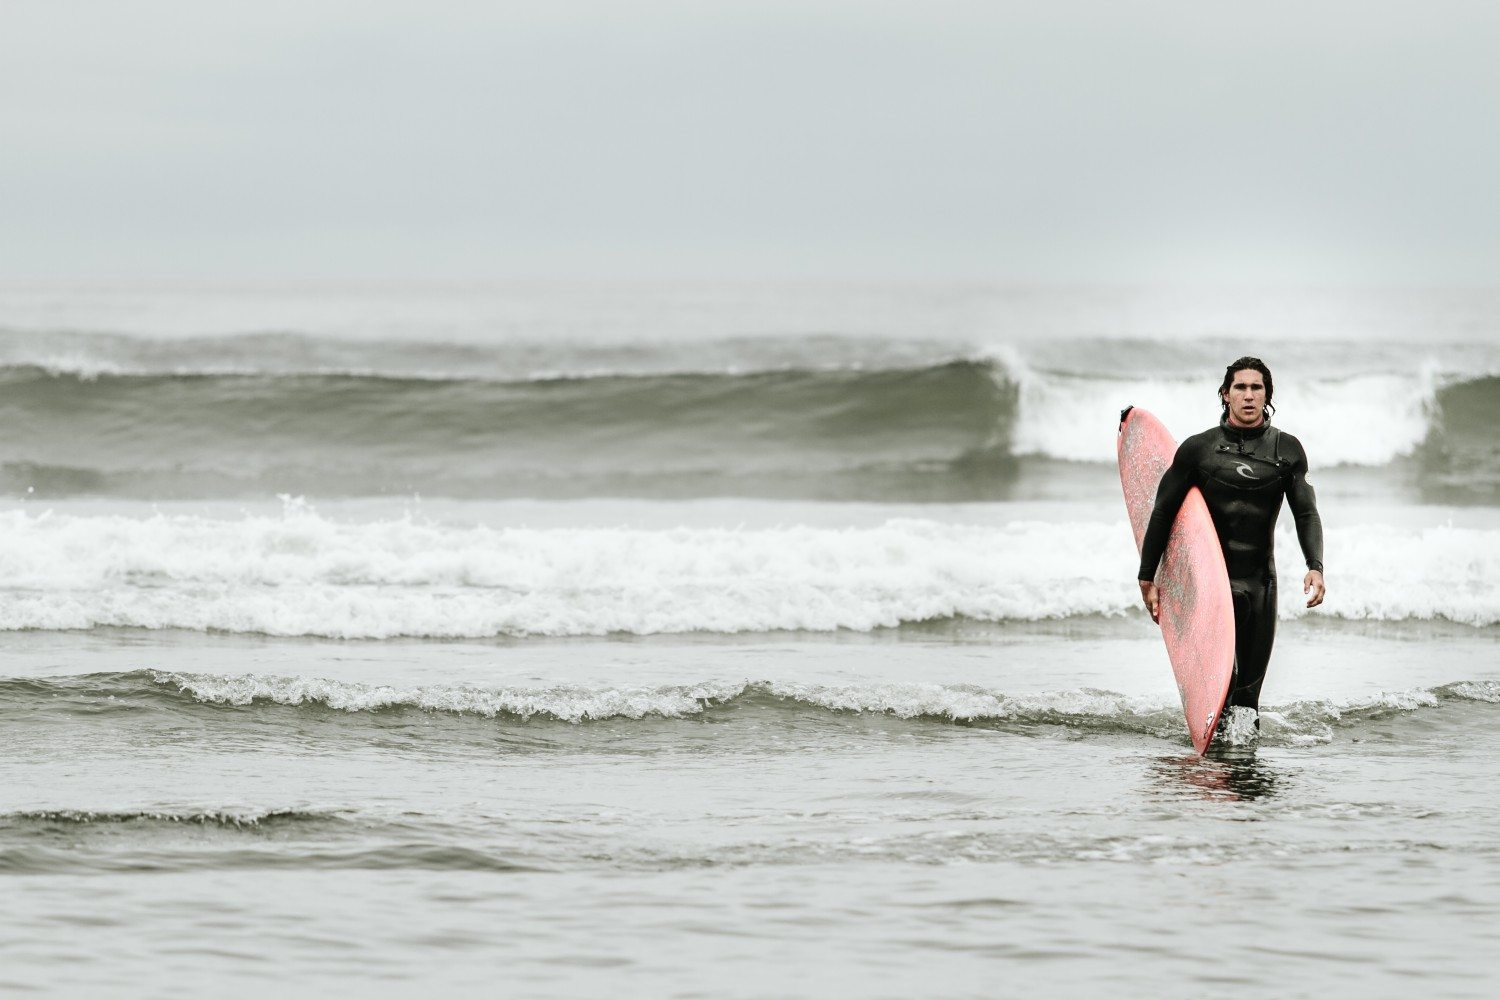 Tyrell Mara surfing in Tofino